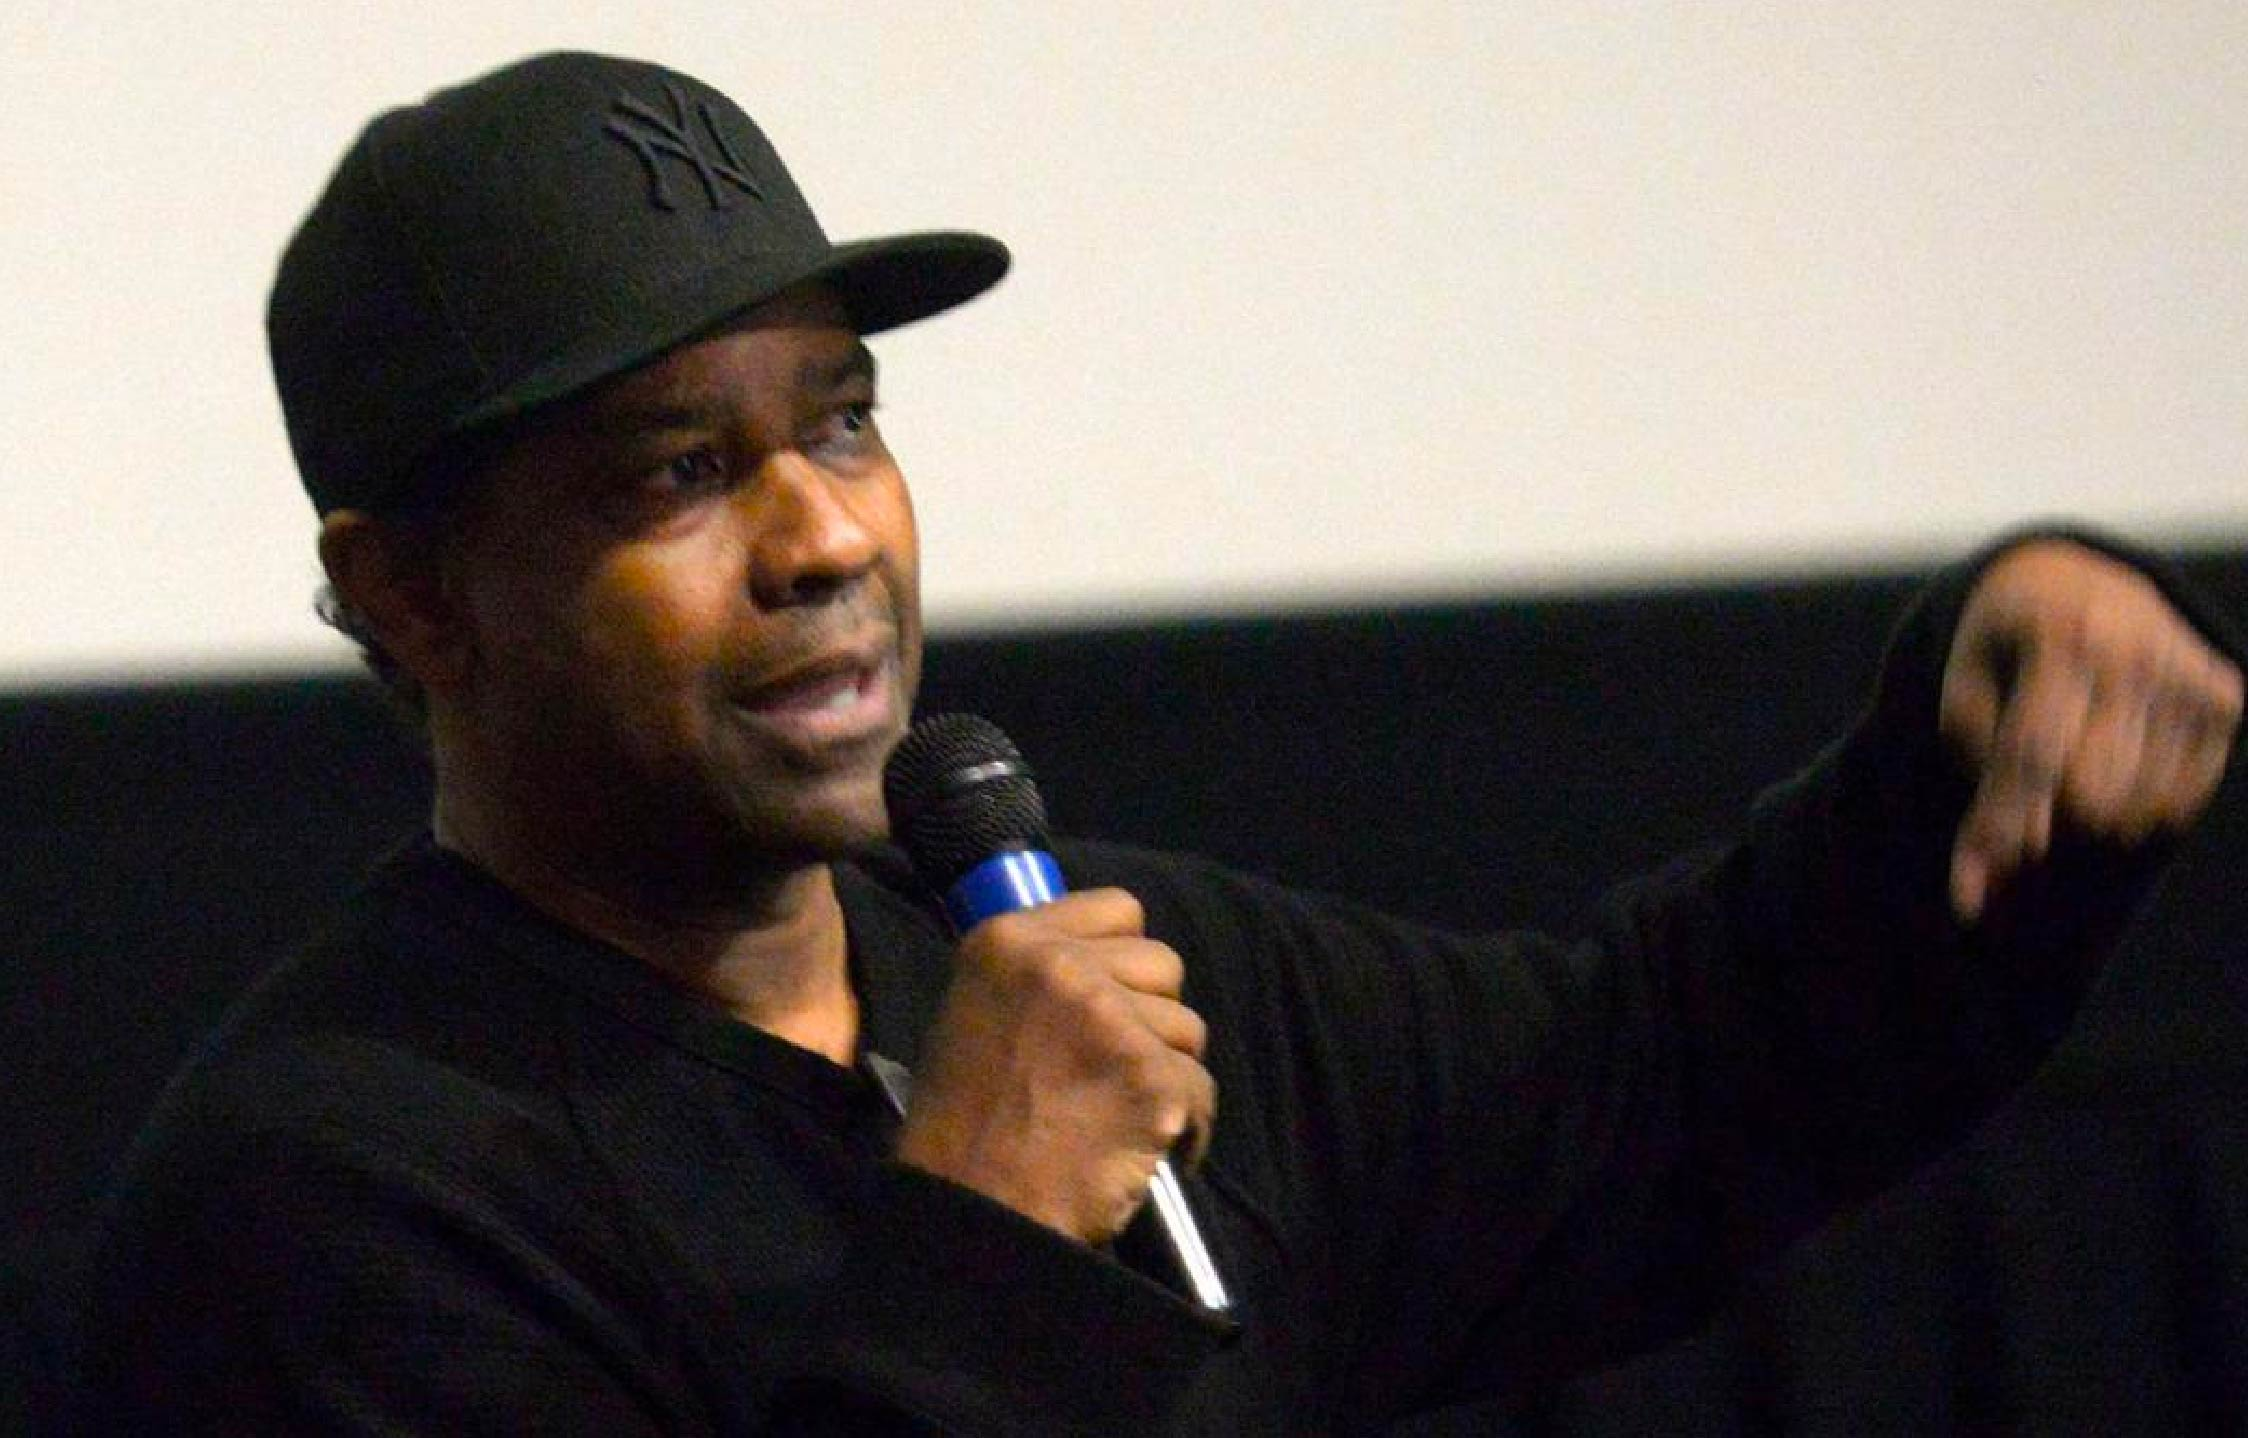 Denzel Washington Reveals What God is Telling Him to Do in This New World We're In...